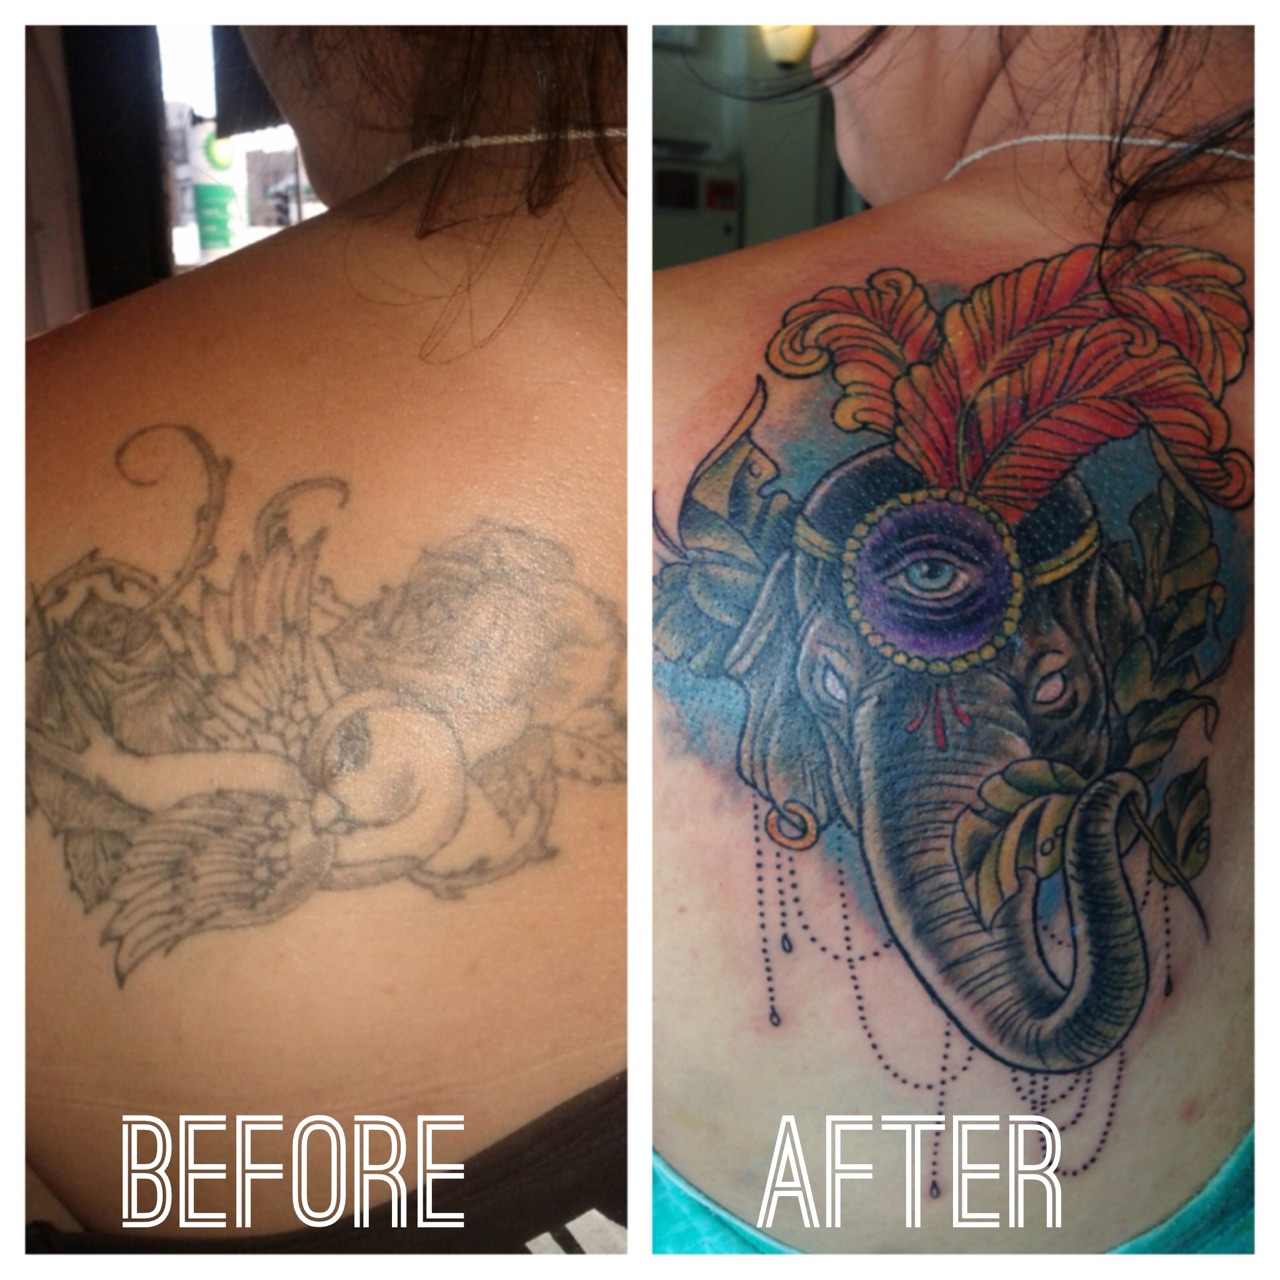 Cover Up Tattoos Royal Flesh Tattoo And Piercing Chicago Tattoo Shops 773 975 9753 Ideas And Designs